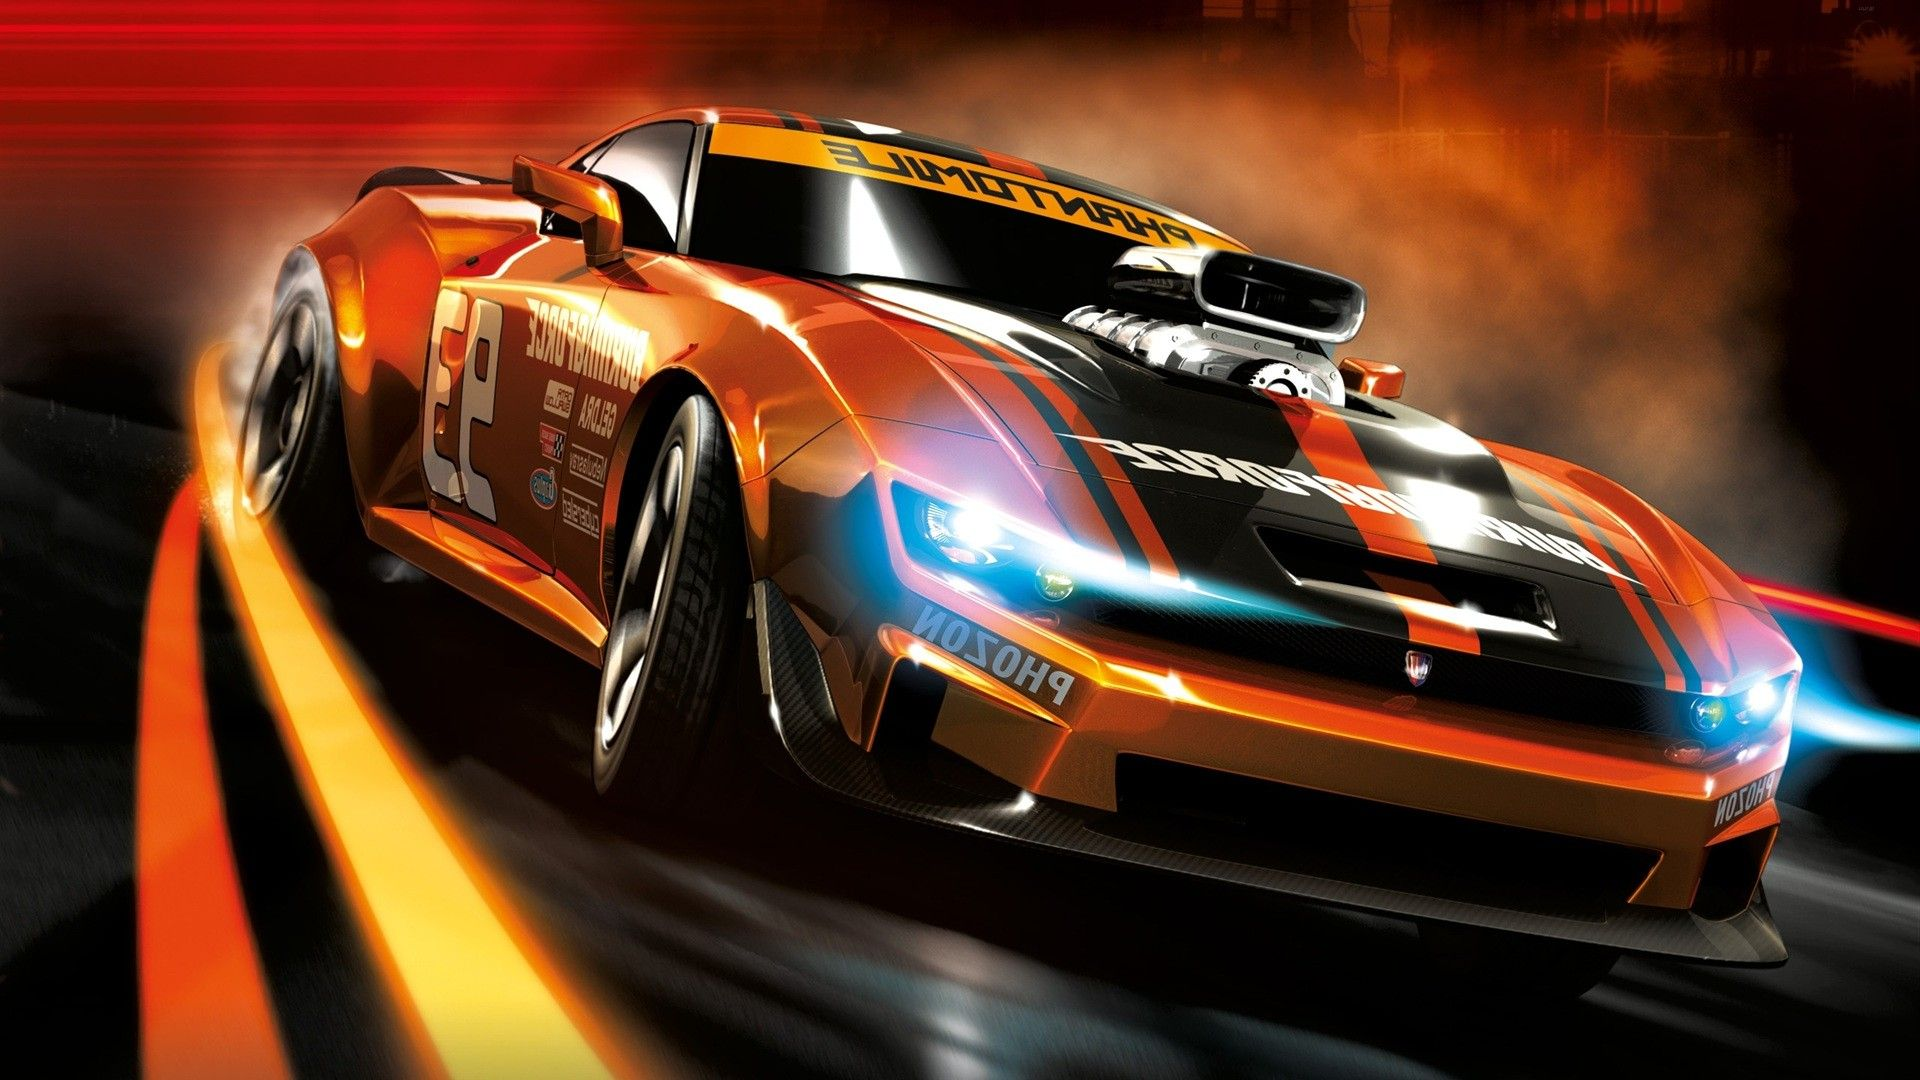 Great Cool Car Background Wallpapers | Wallpapers, Backgrounds, Images .